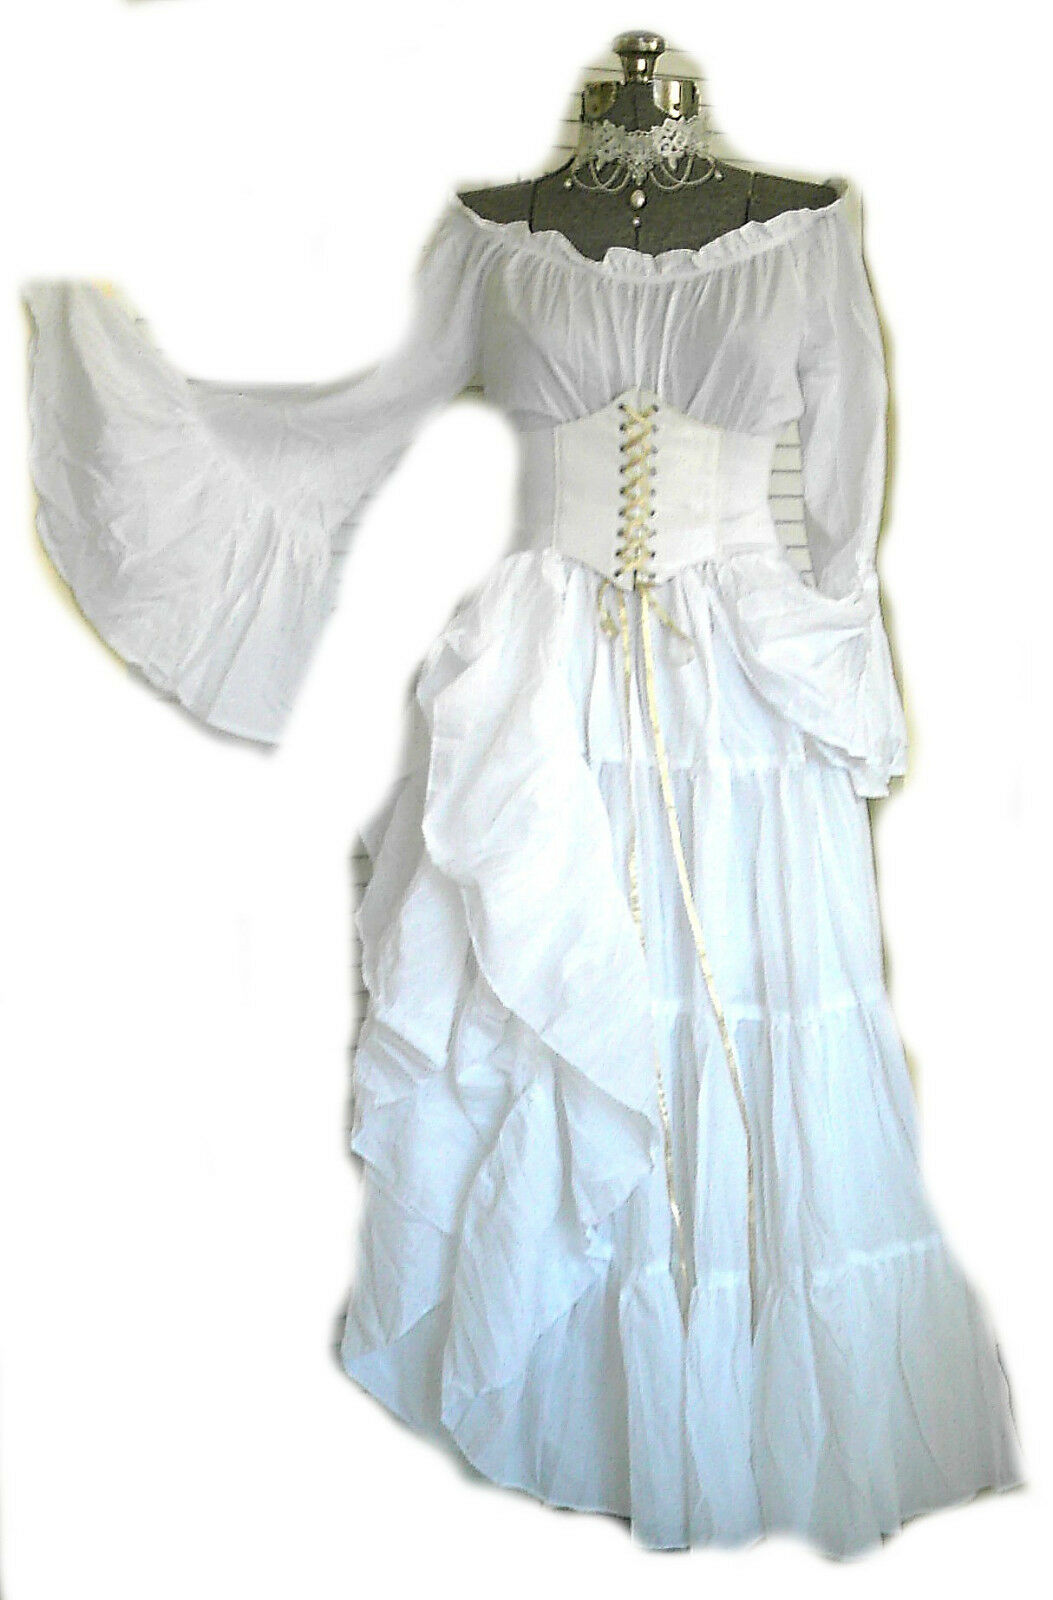 RENAISSANCE COSTUME WEDDING Gown Dress White Corset Chemise Pirate ...